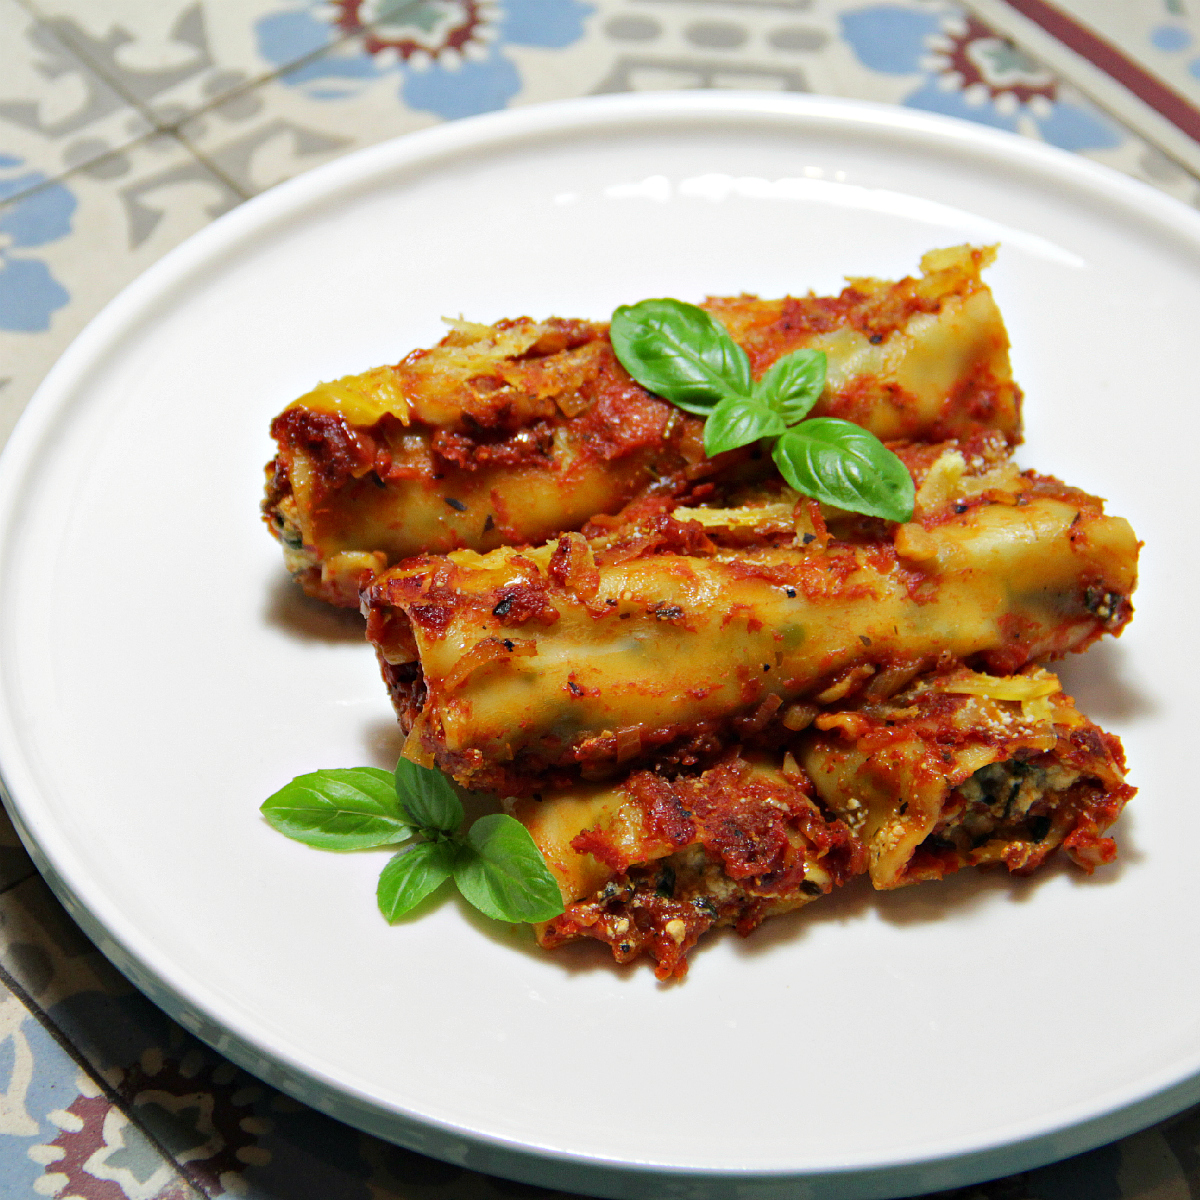 Vegan Spinach 'Ricotta' Cannelloni - The Vegan Eskimo